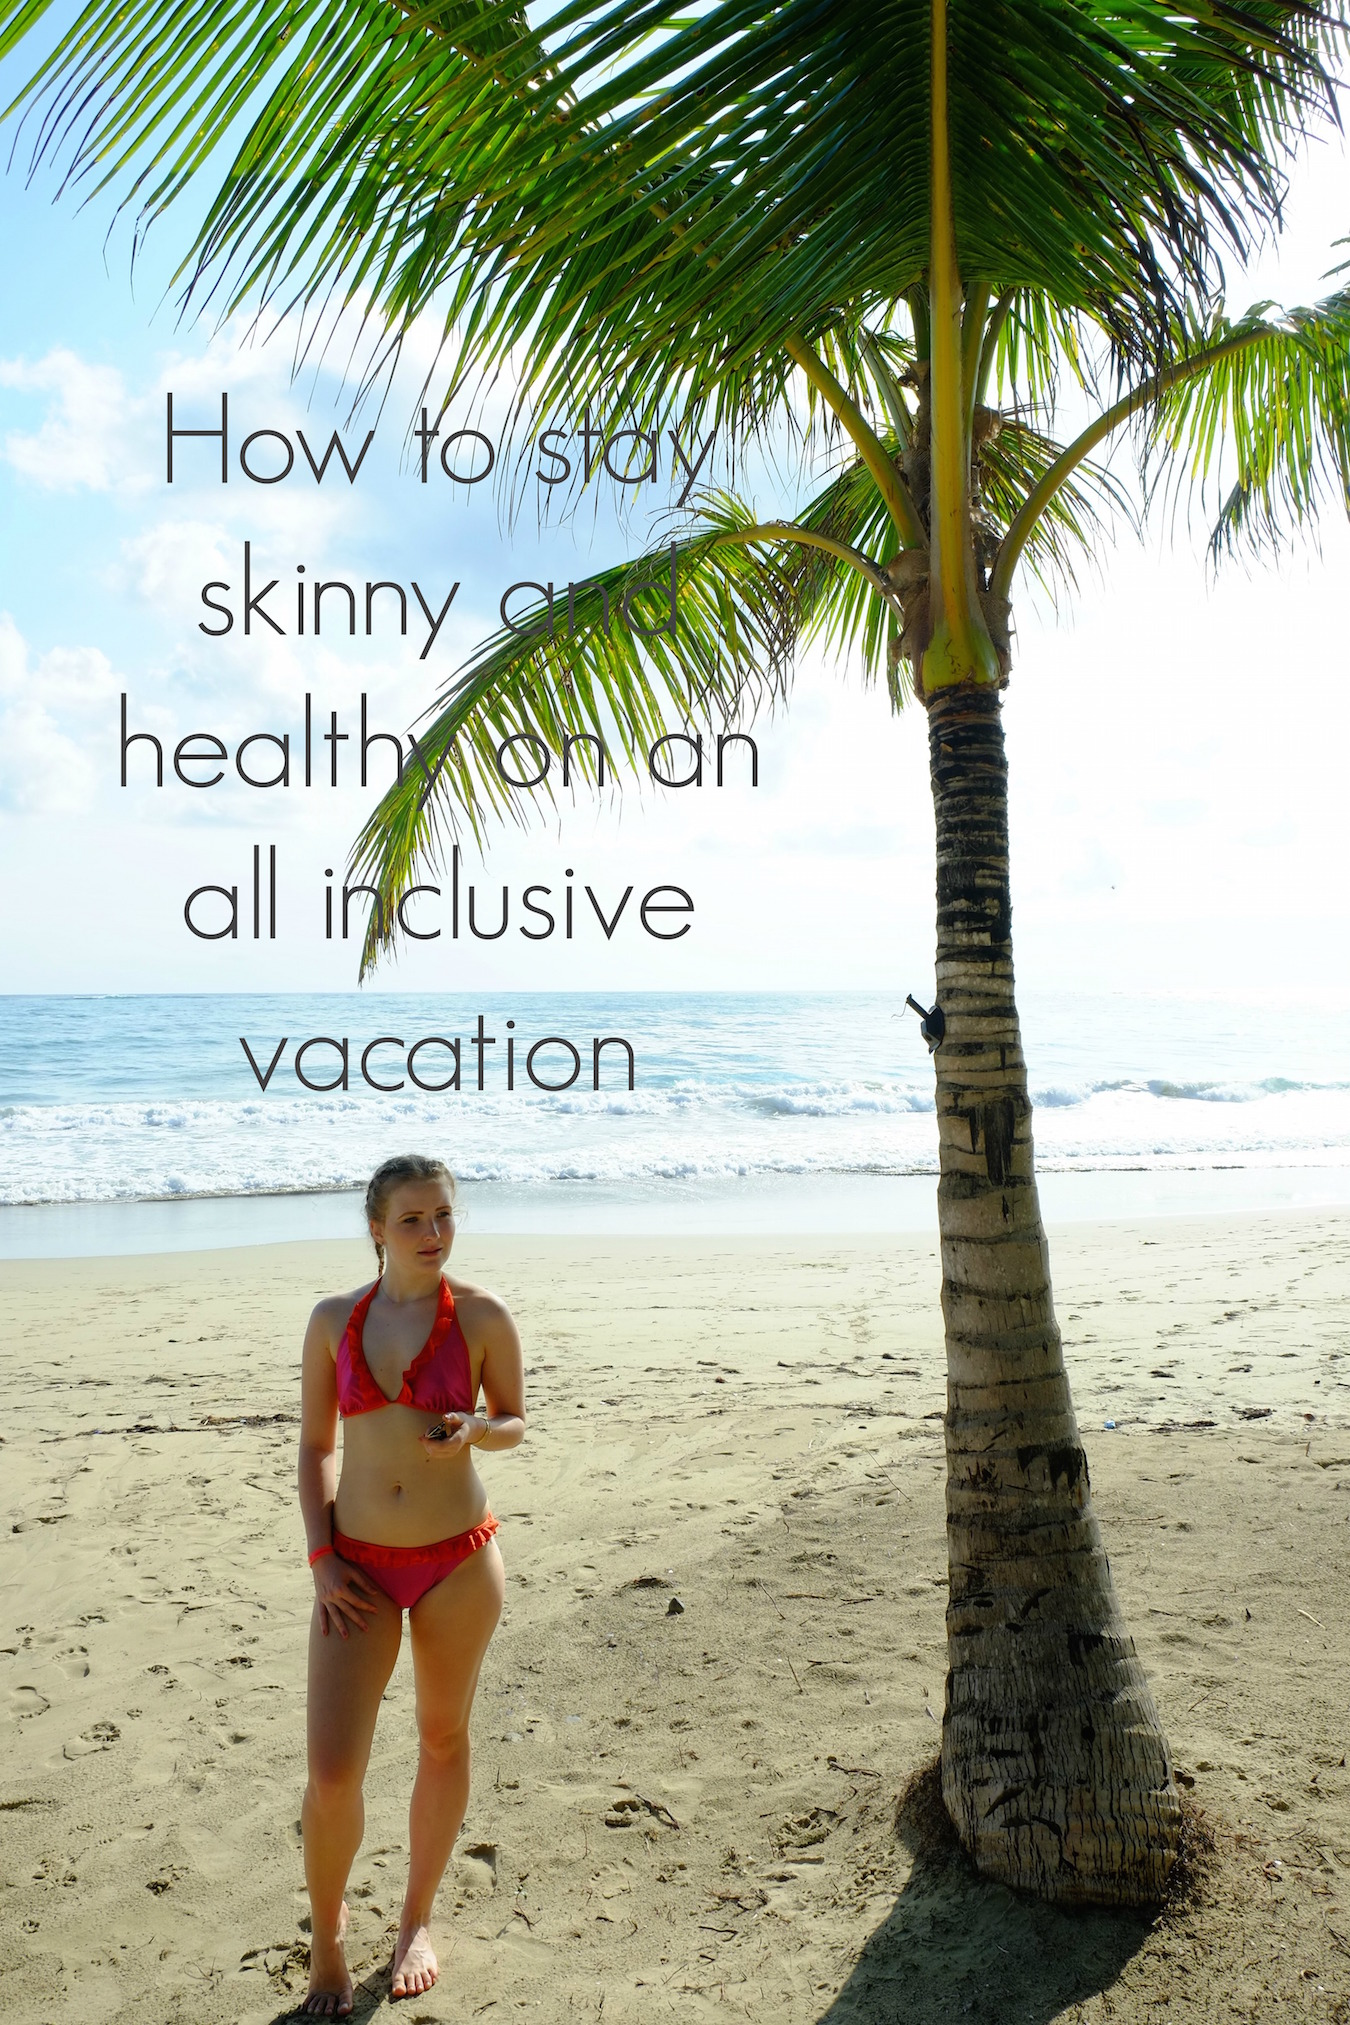 How-to-stay-skinny-and-healthy-on-an-all-inclusive-vacation